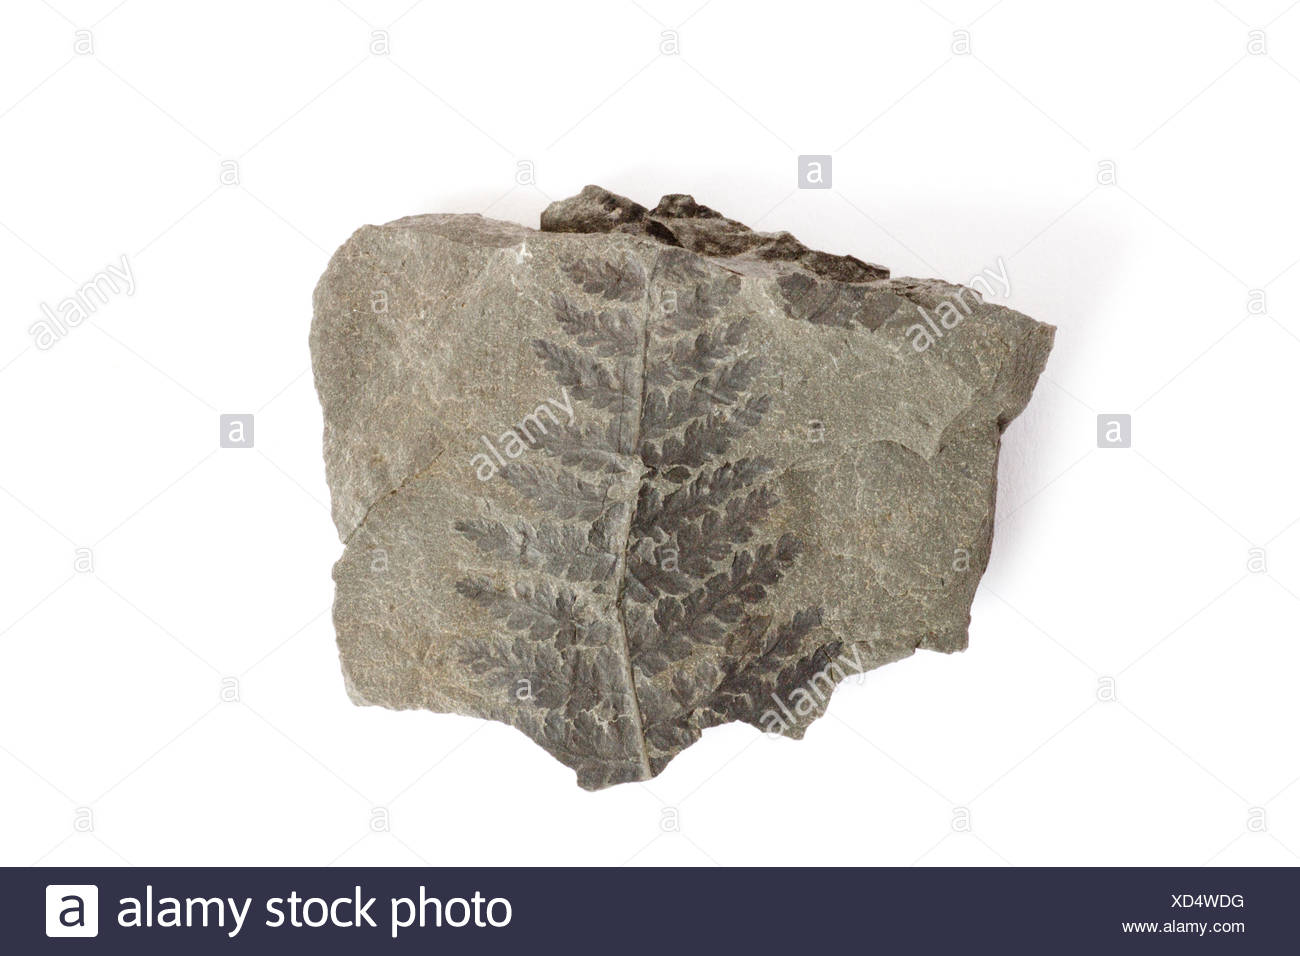 crested wood fern, Pecopteris arborescens, fossil, fossils, rock, primeval times, carbon, stone, geology, fern, - Stock Image